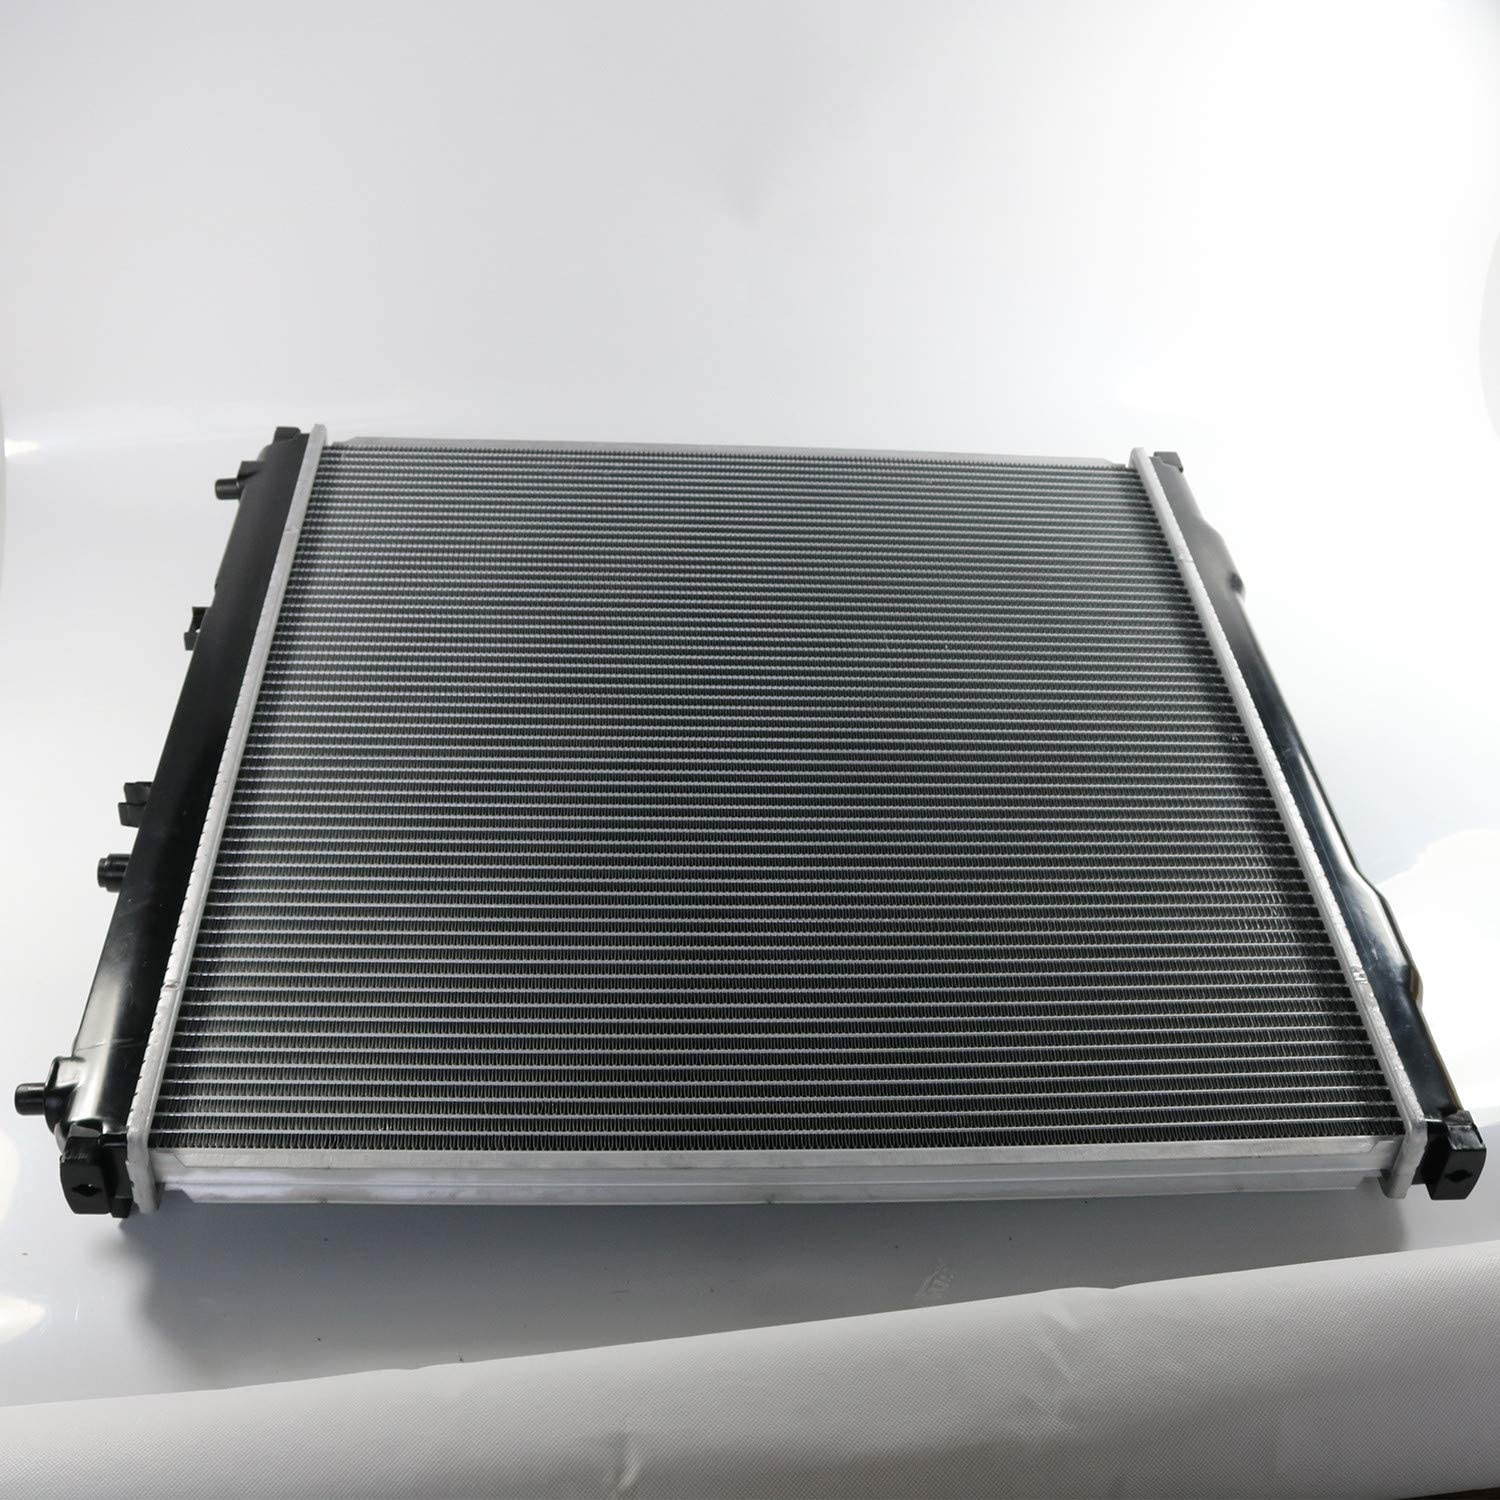 3.5L V6 2004 2005 2585 New Radiator Fits For Kia Sorento Radiator 2003-2006